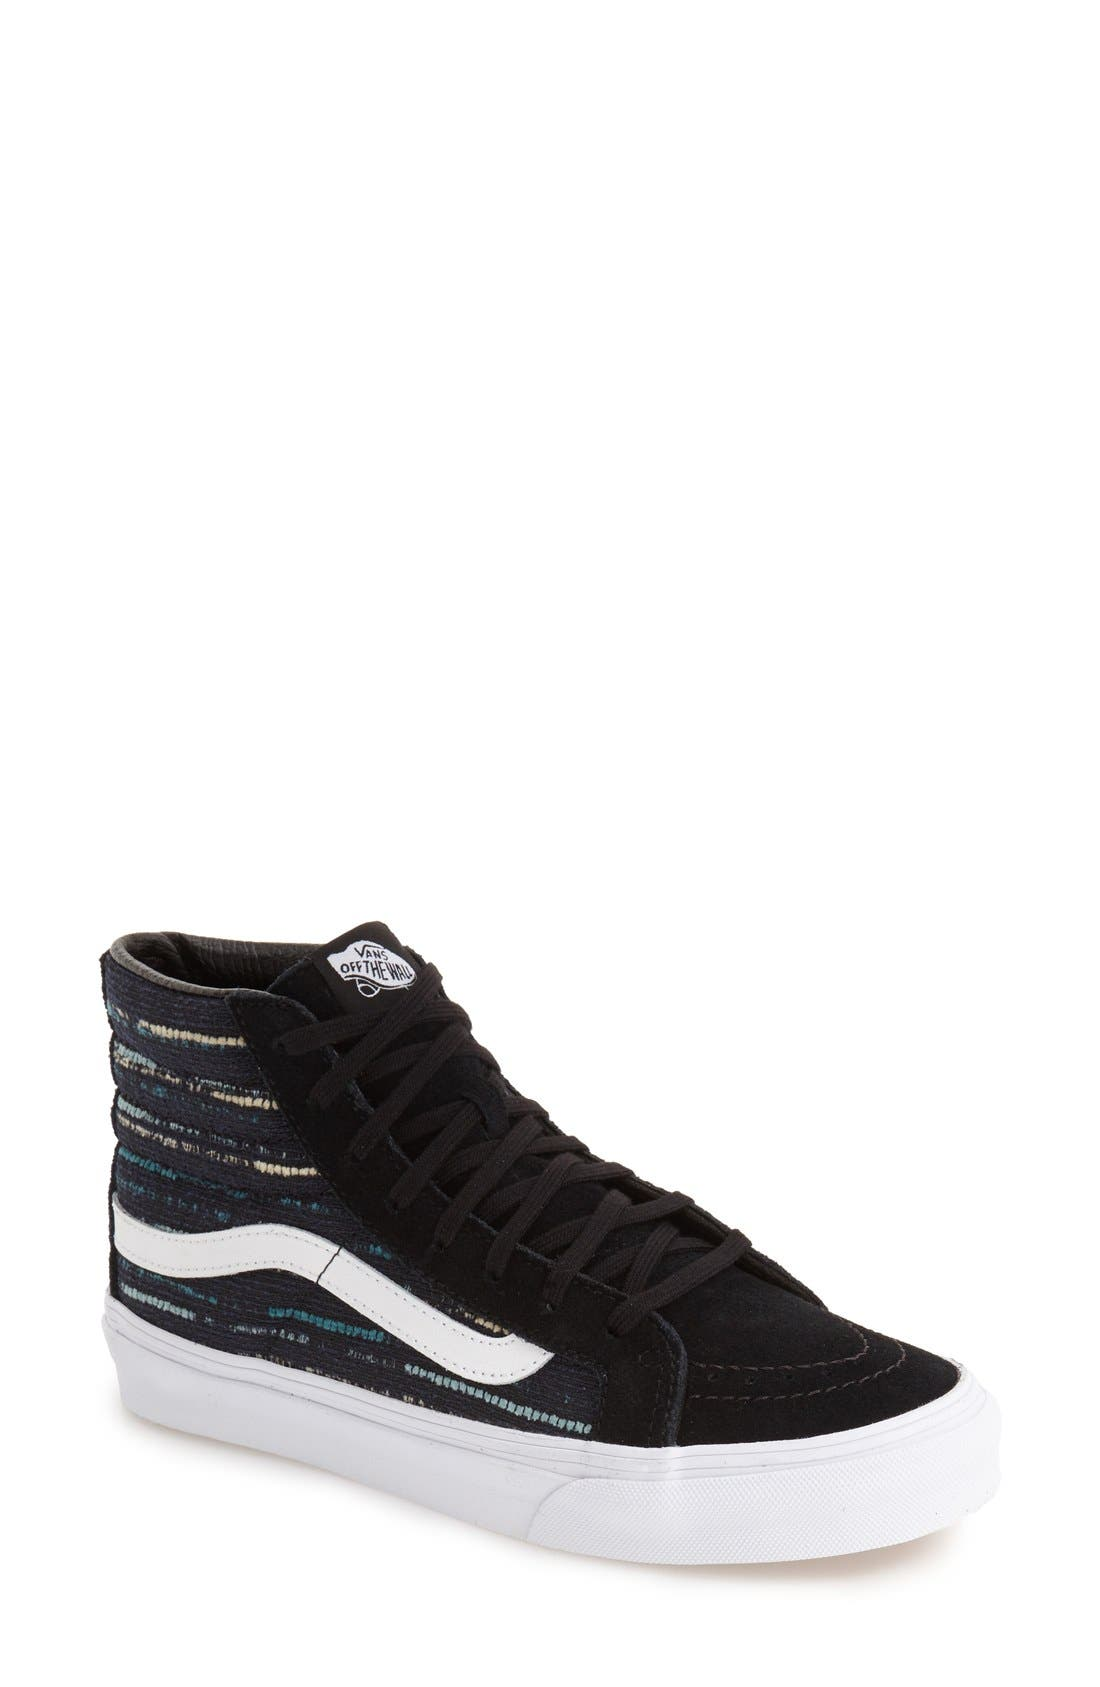 Alternate Image 1 Selected - Vans Sk-8 Hi Slim Sneaker (Women)